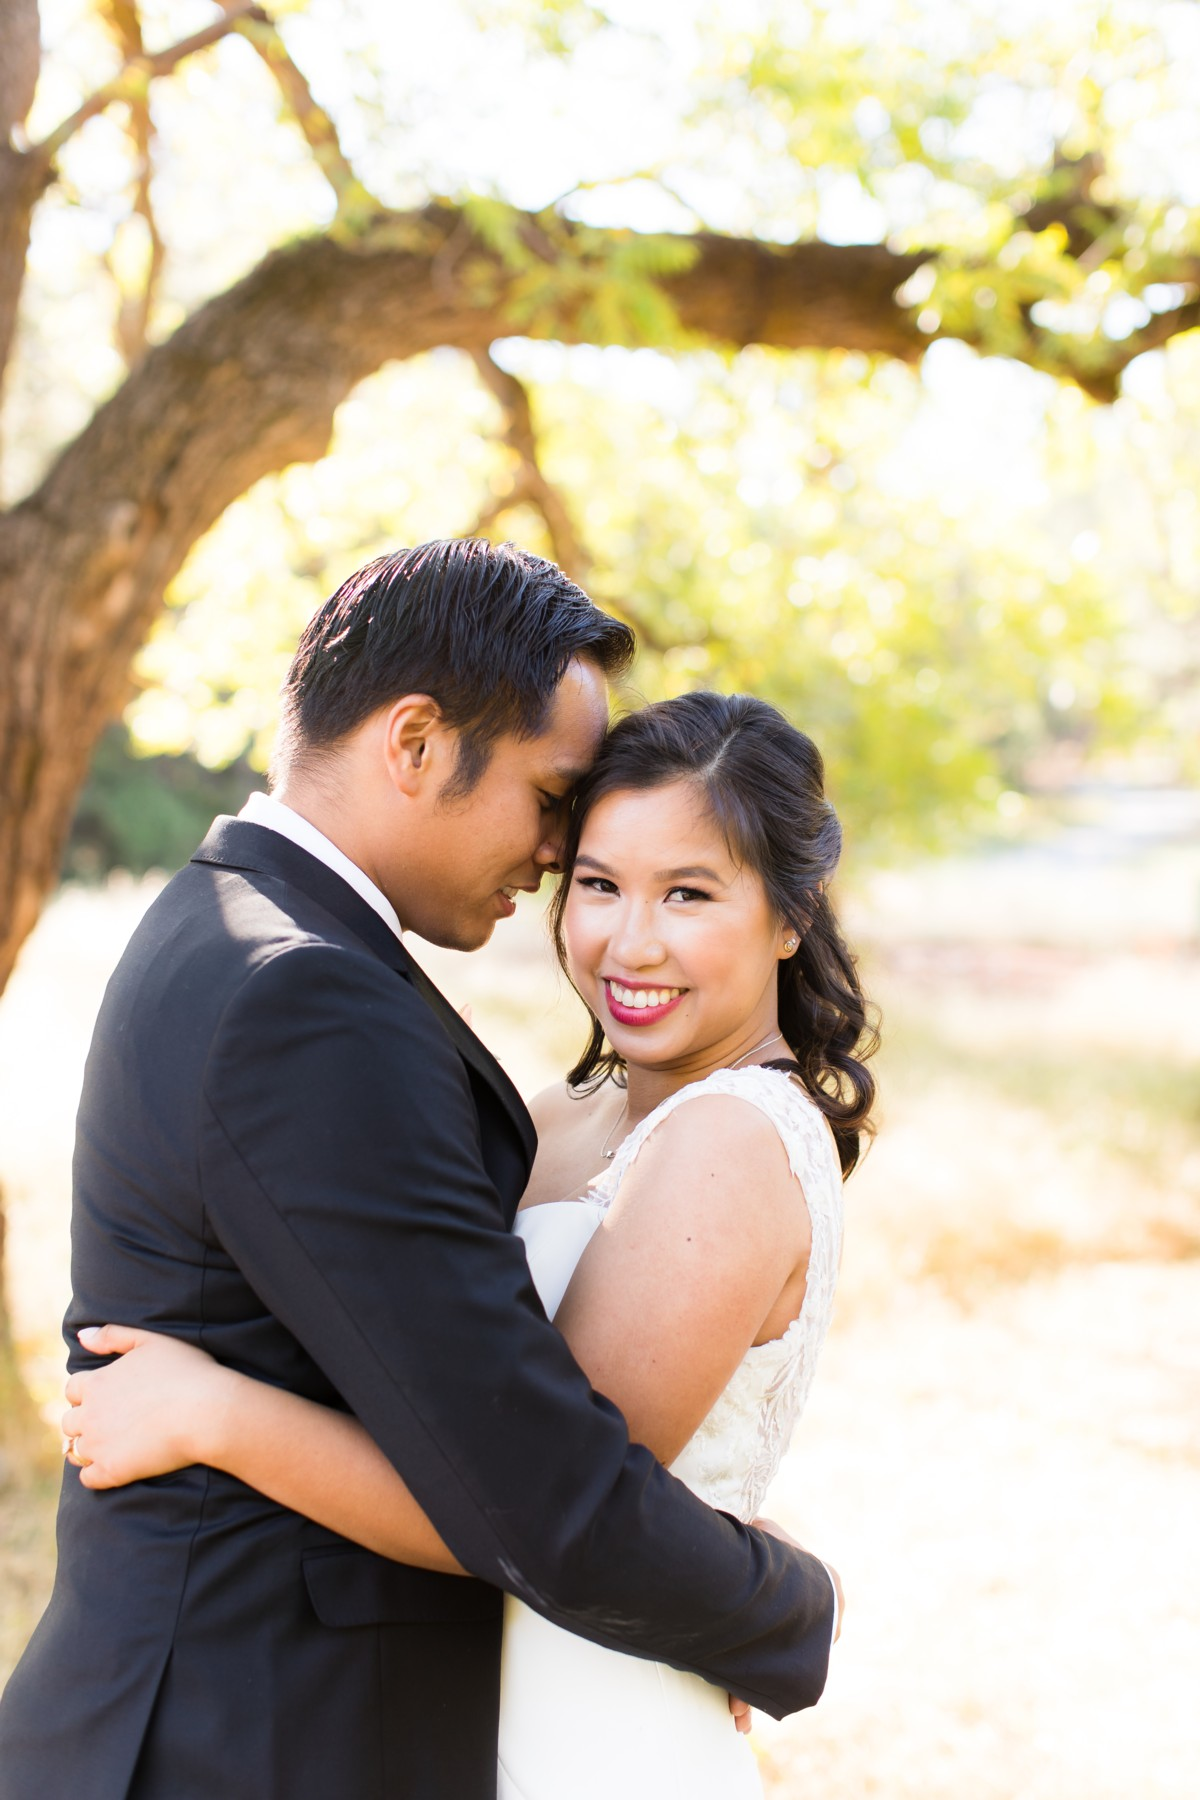 B&B Photography Lake Tahoe wedding - couple in private moment together